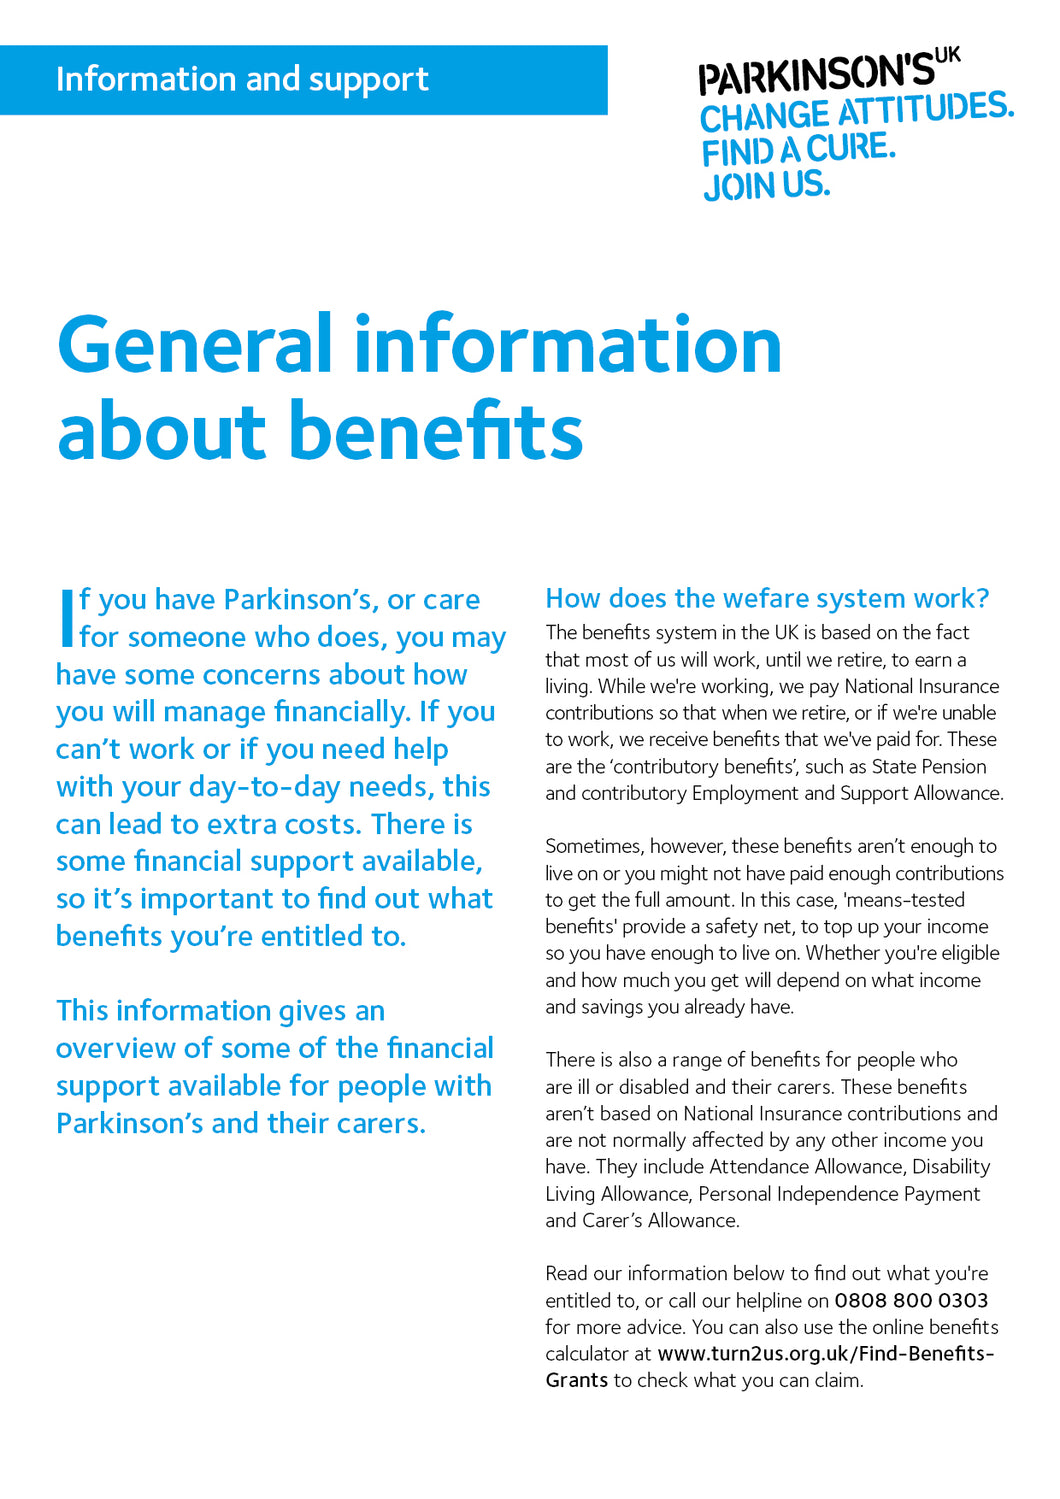 General information about benefits - Parkinson's shop